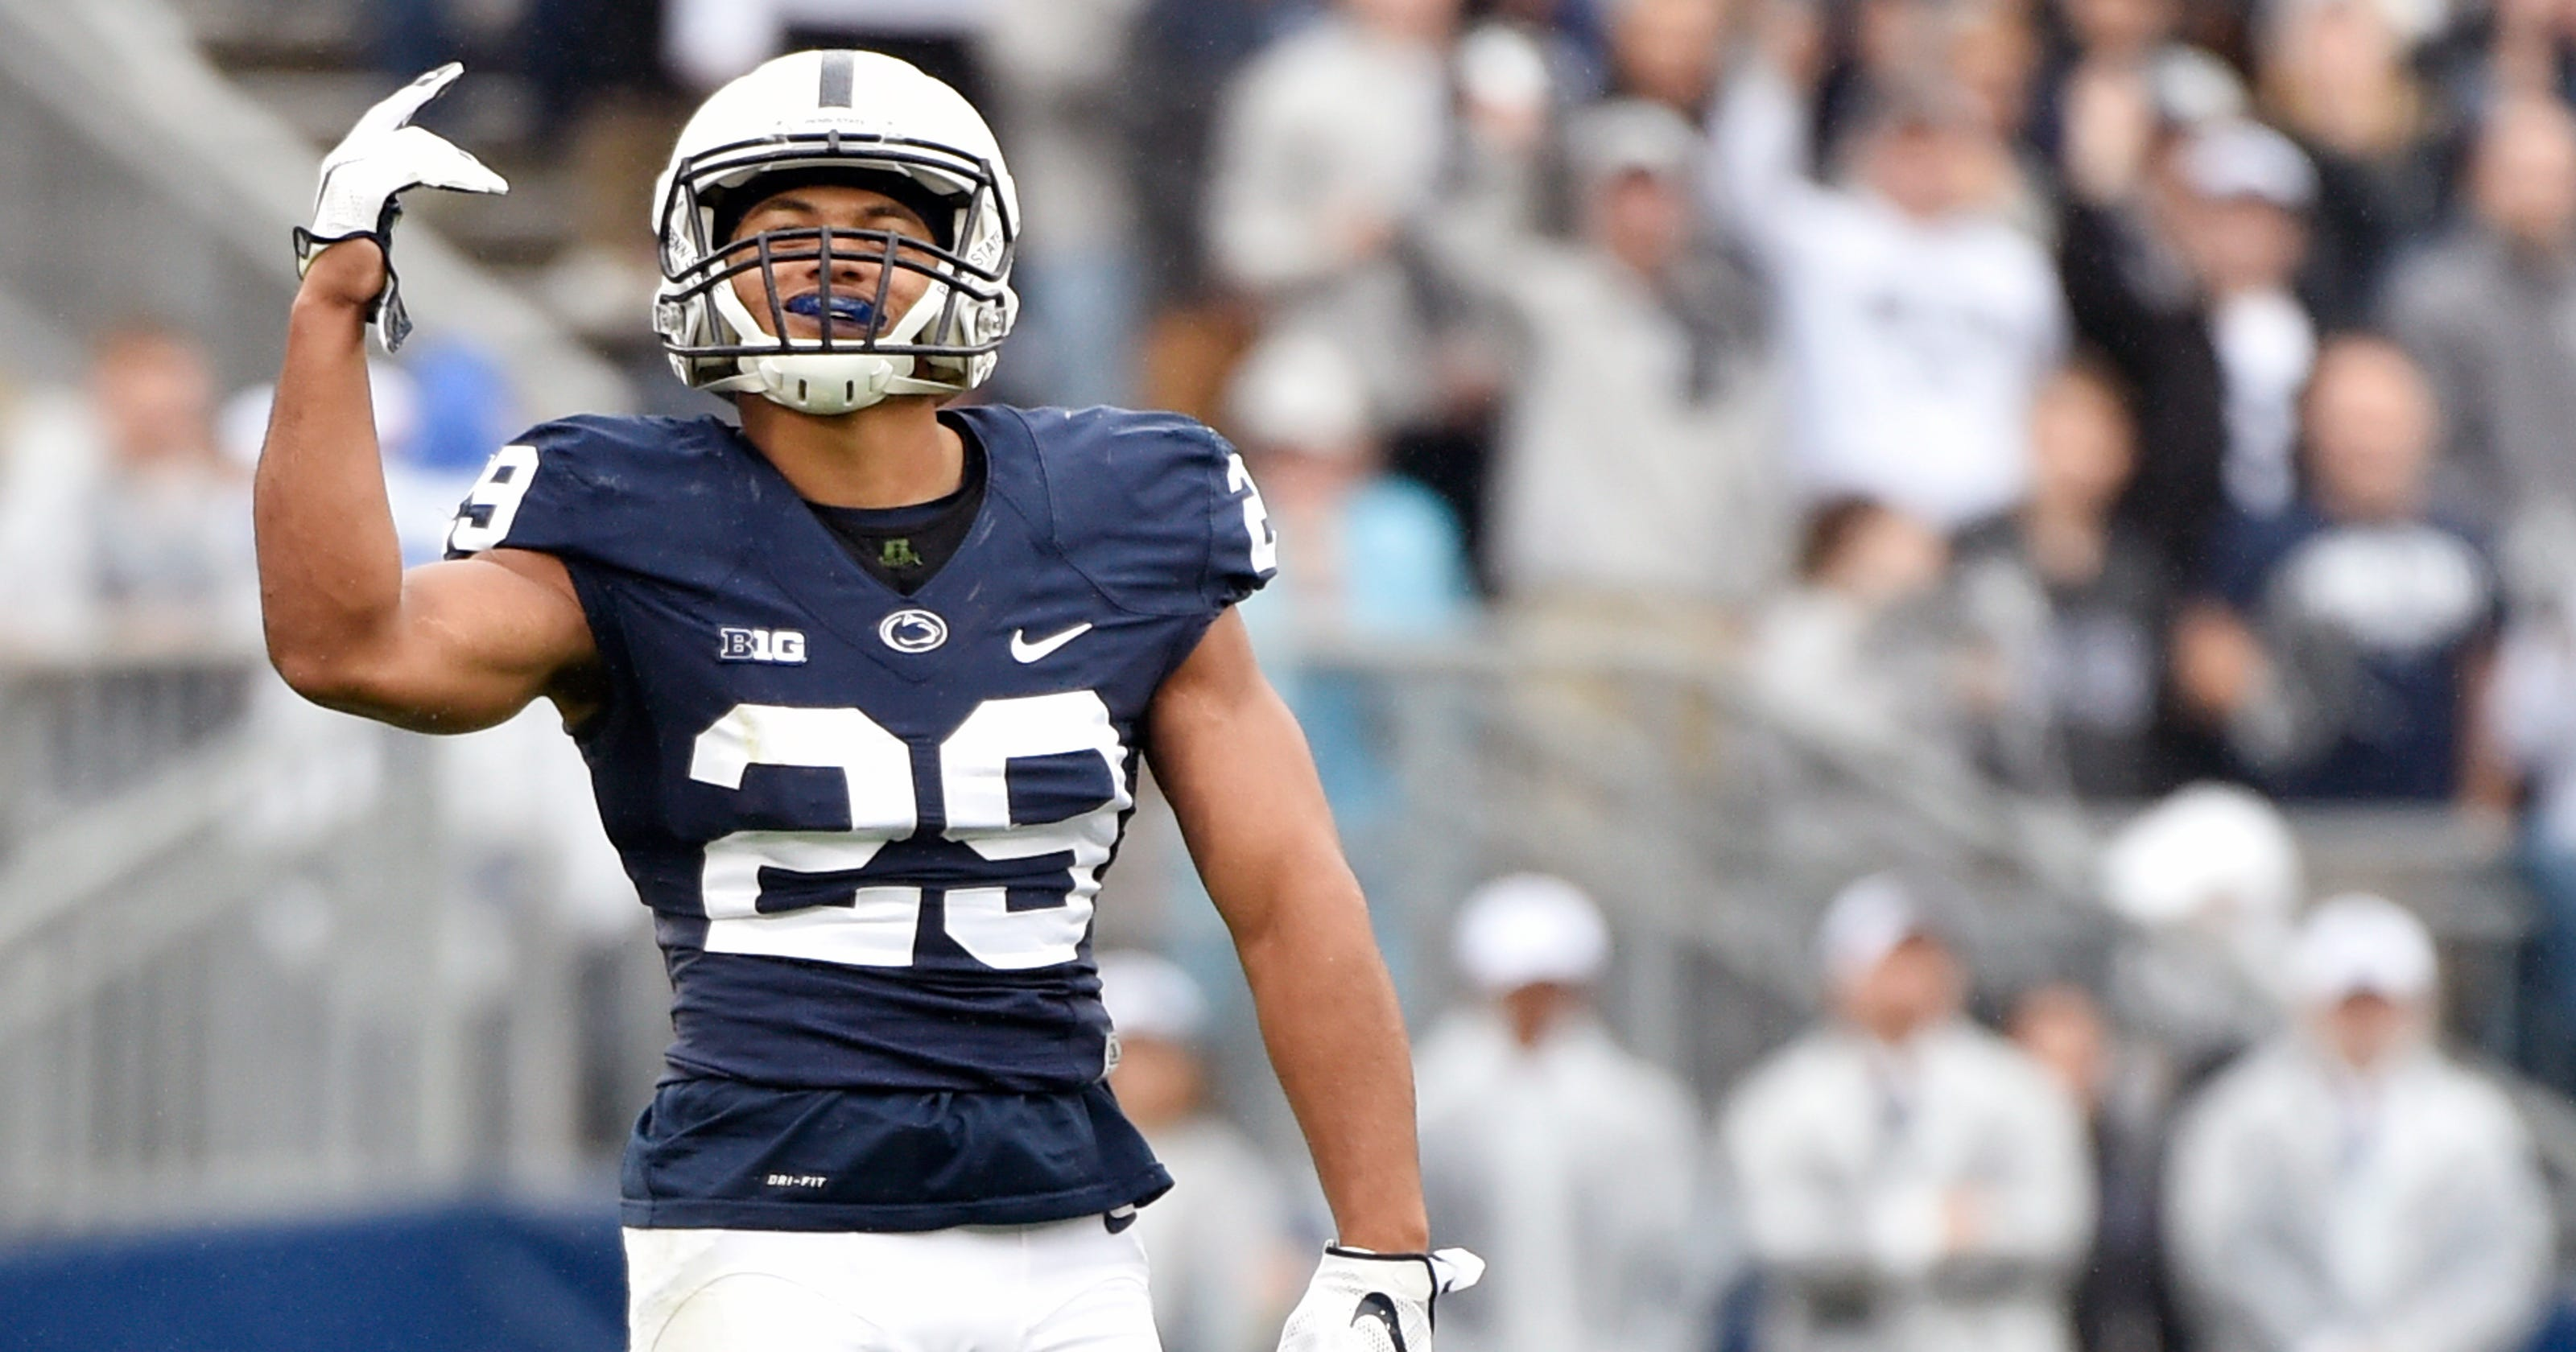 Penn State football: John Reid finally finding his on-field